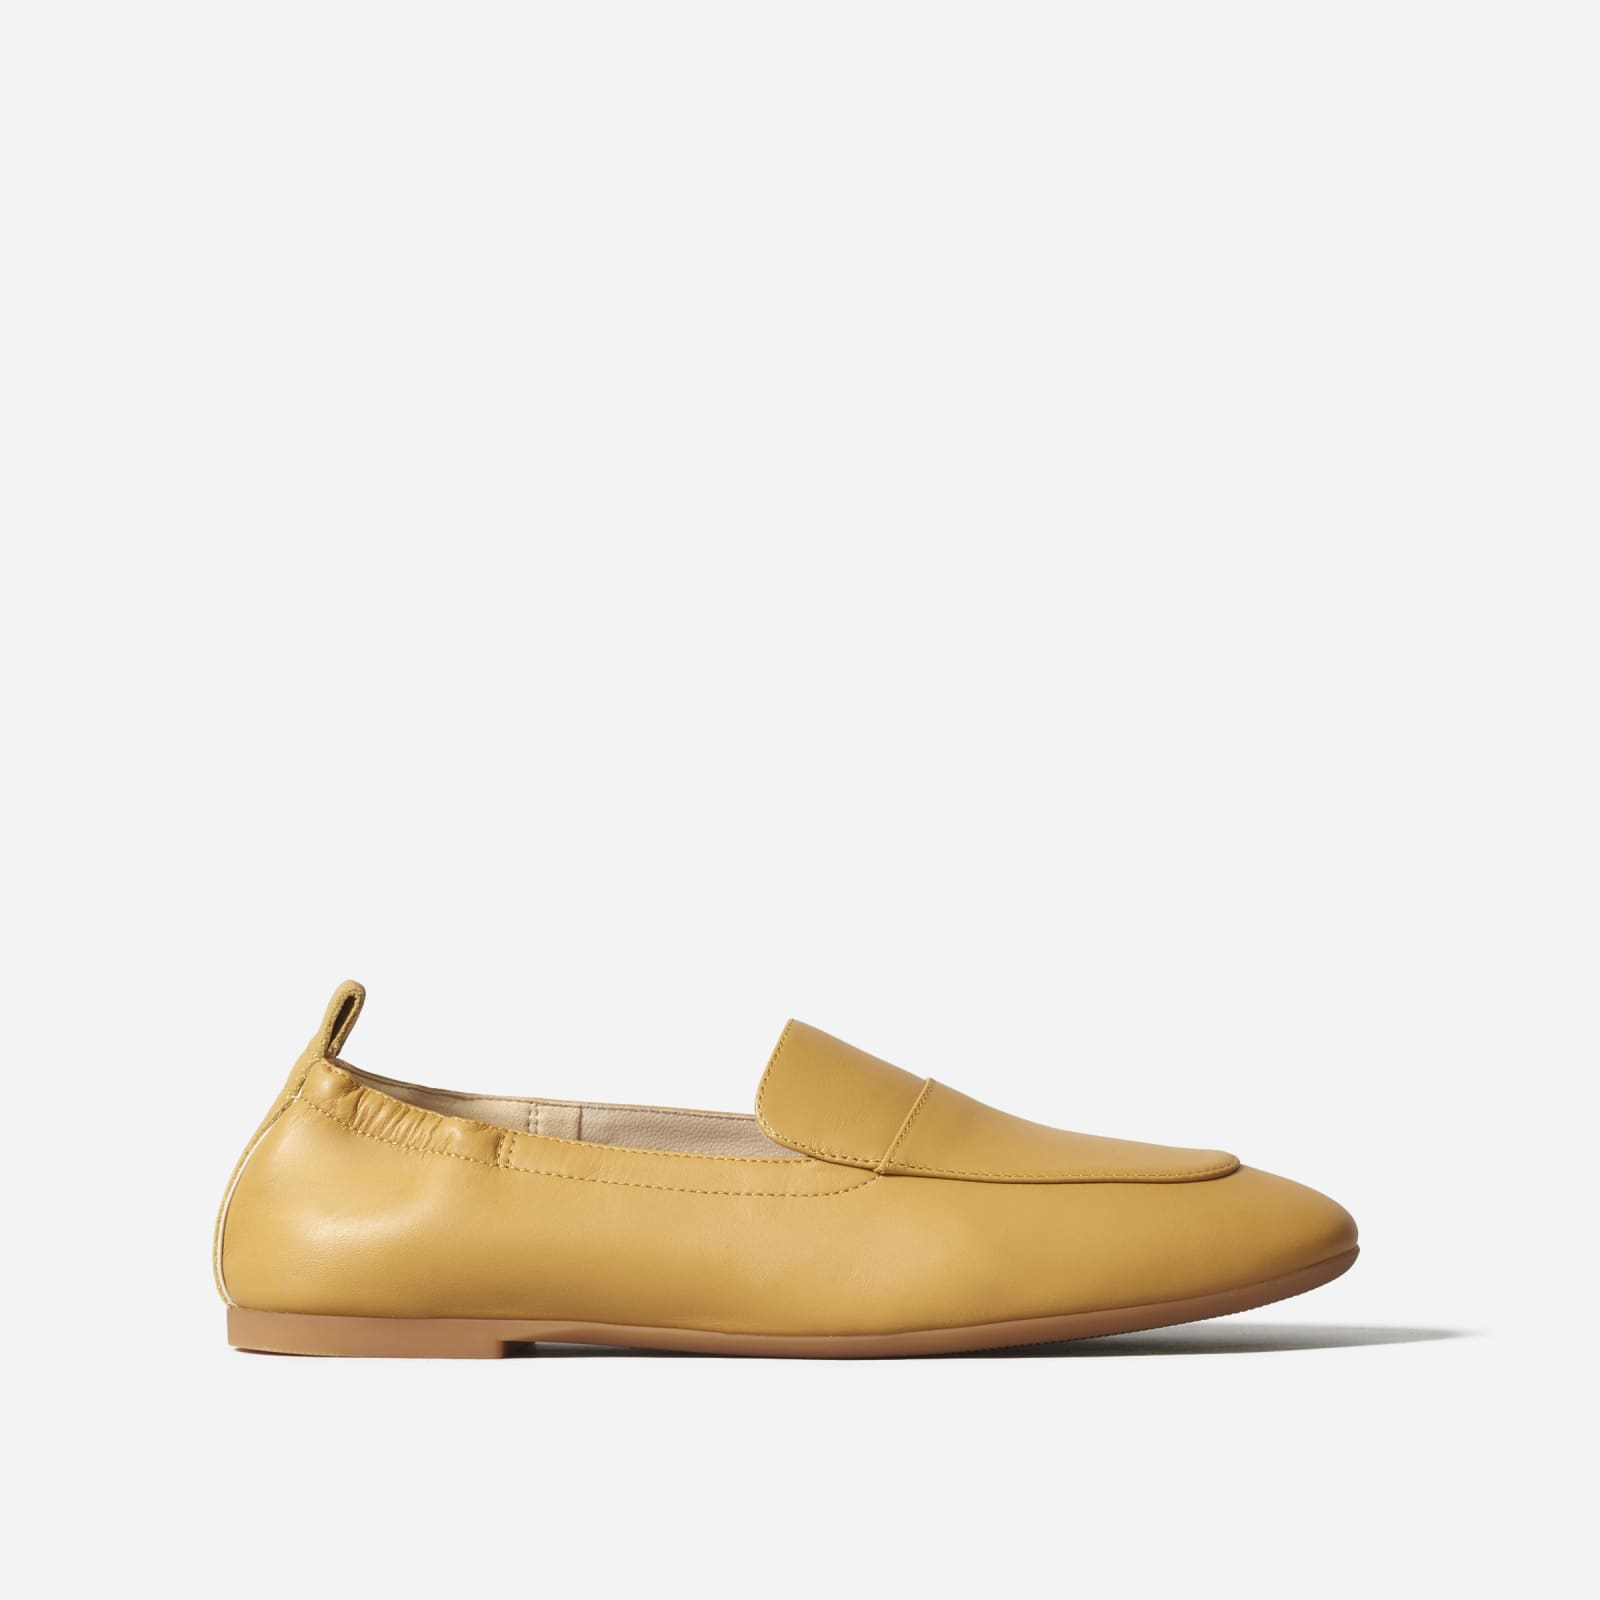 leather driving loafers by everlane in mustard, size 5